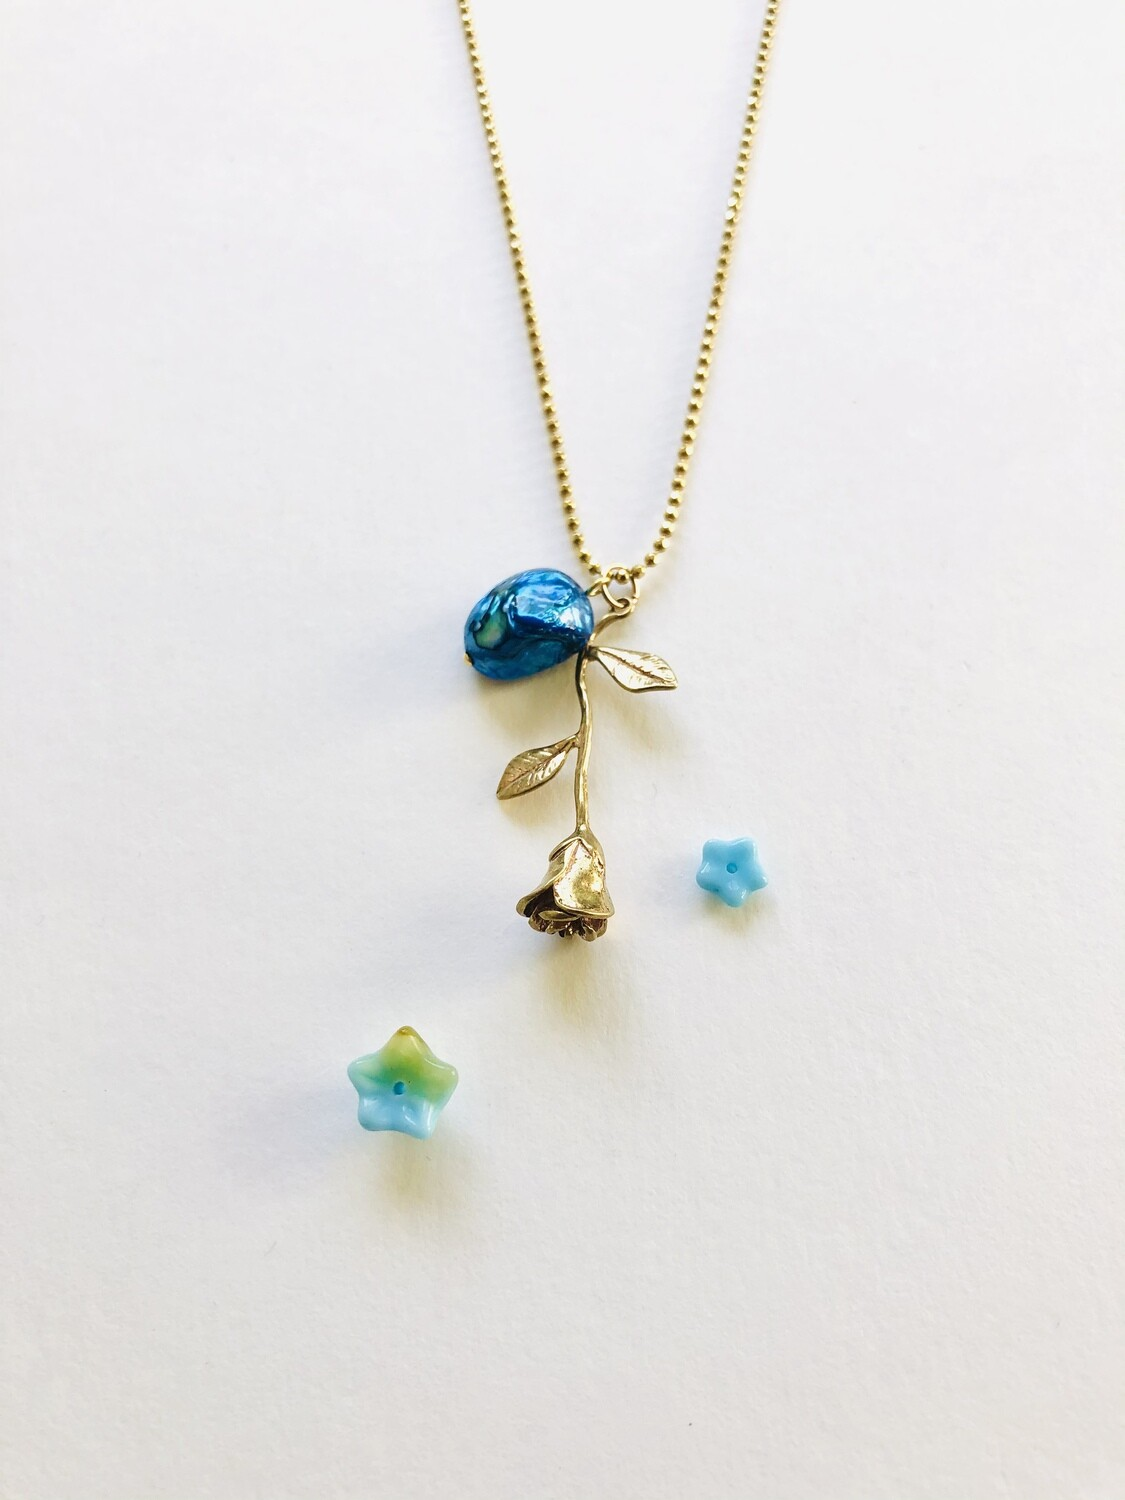 The blue rose necklace